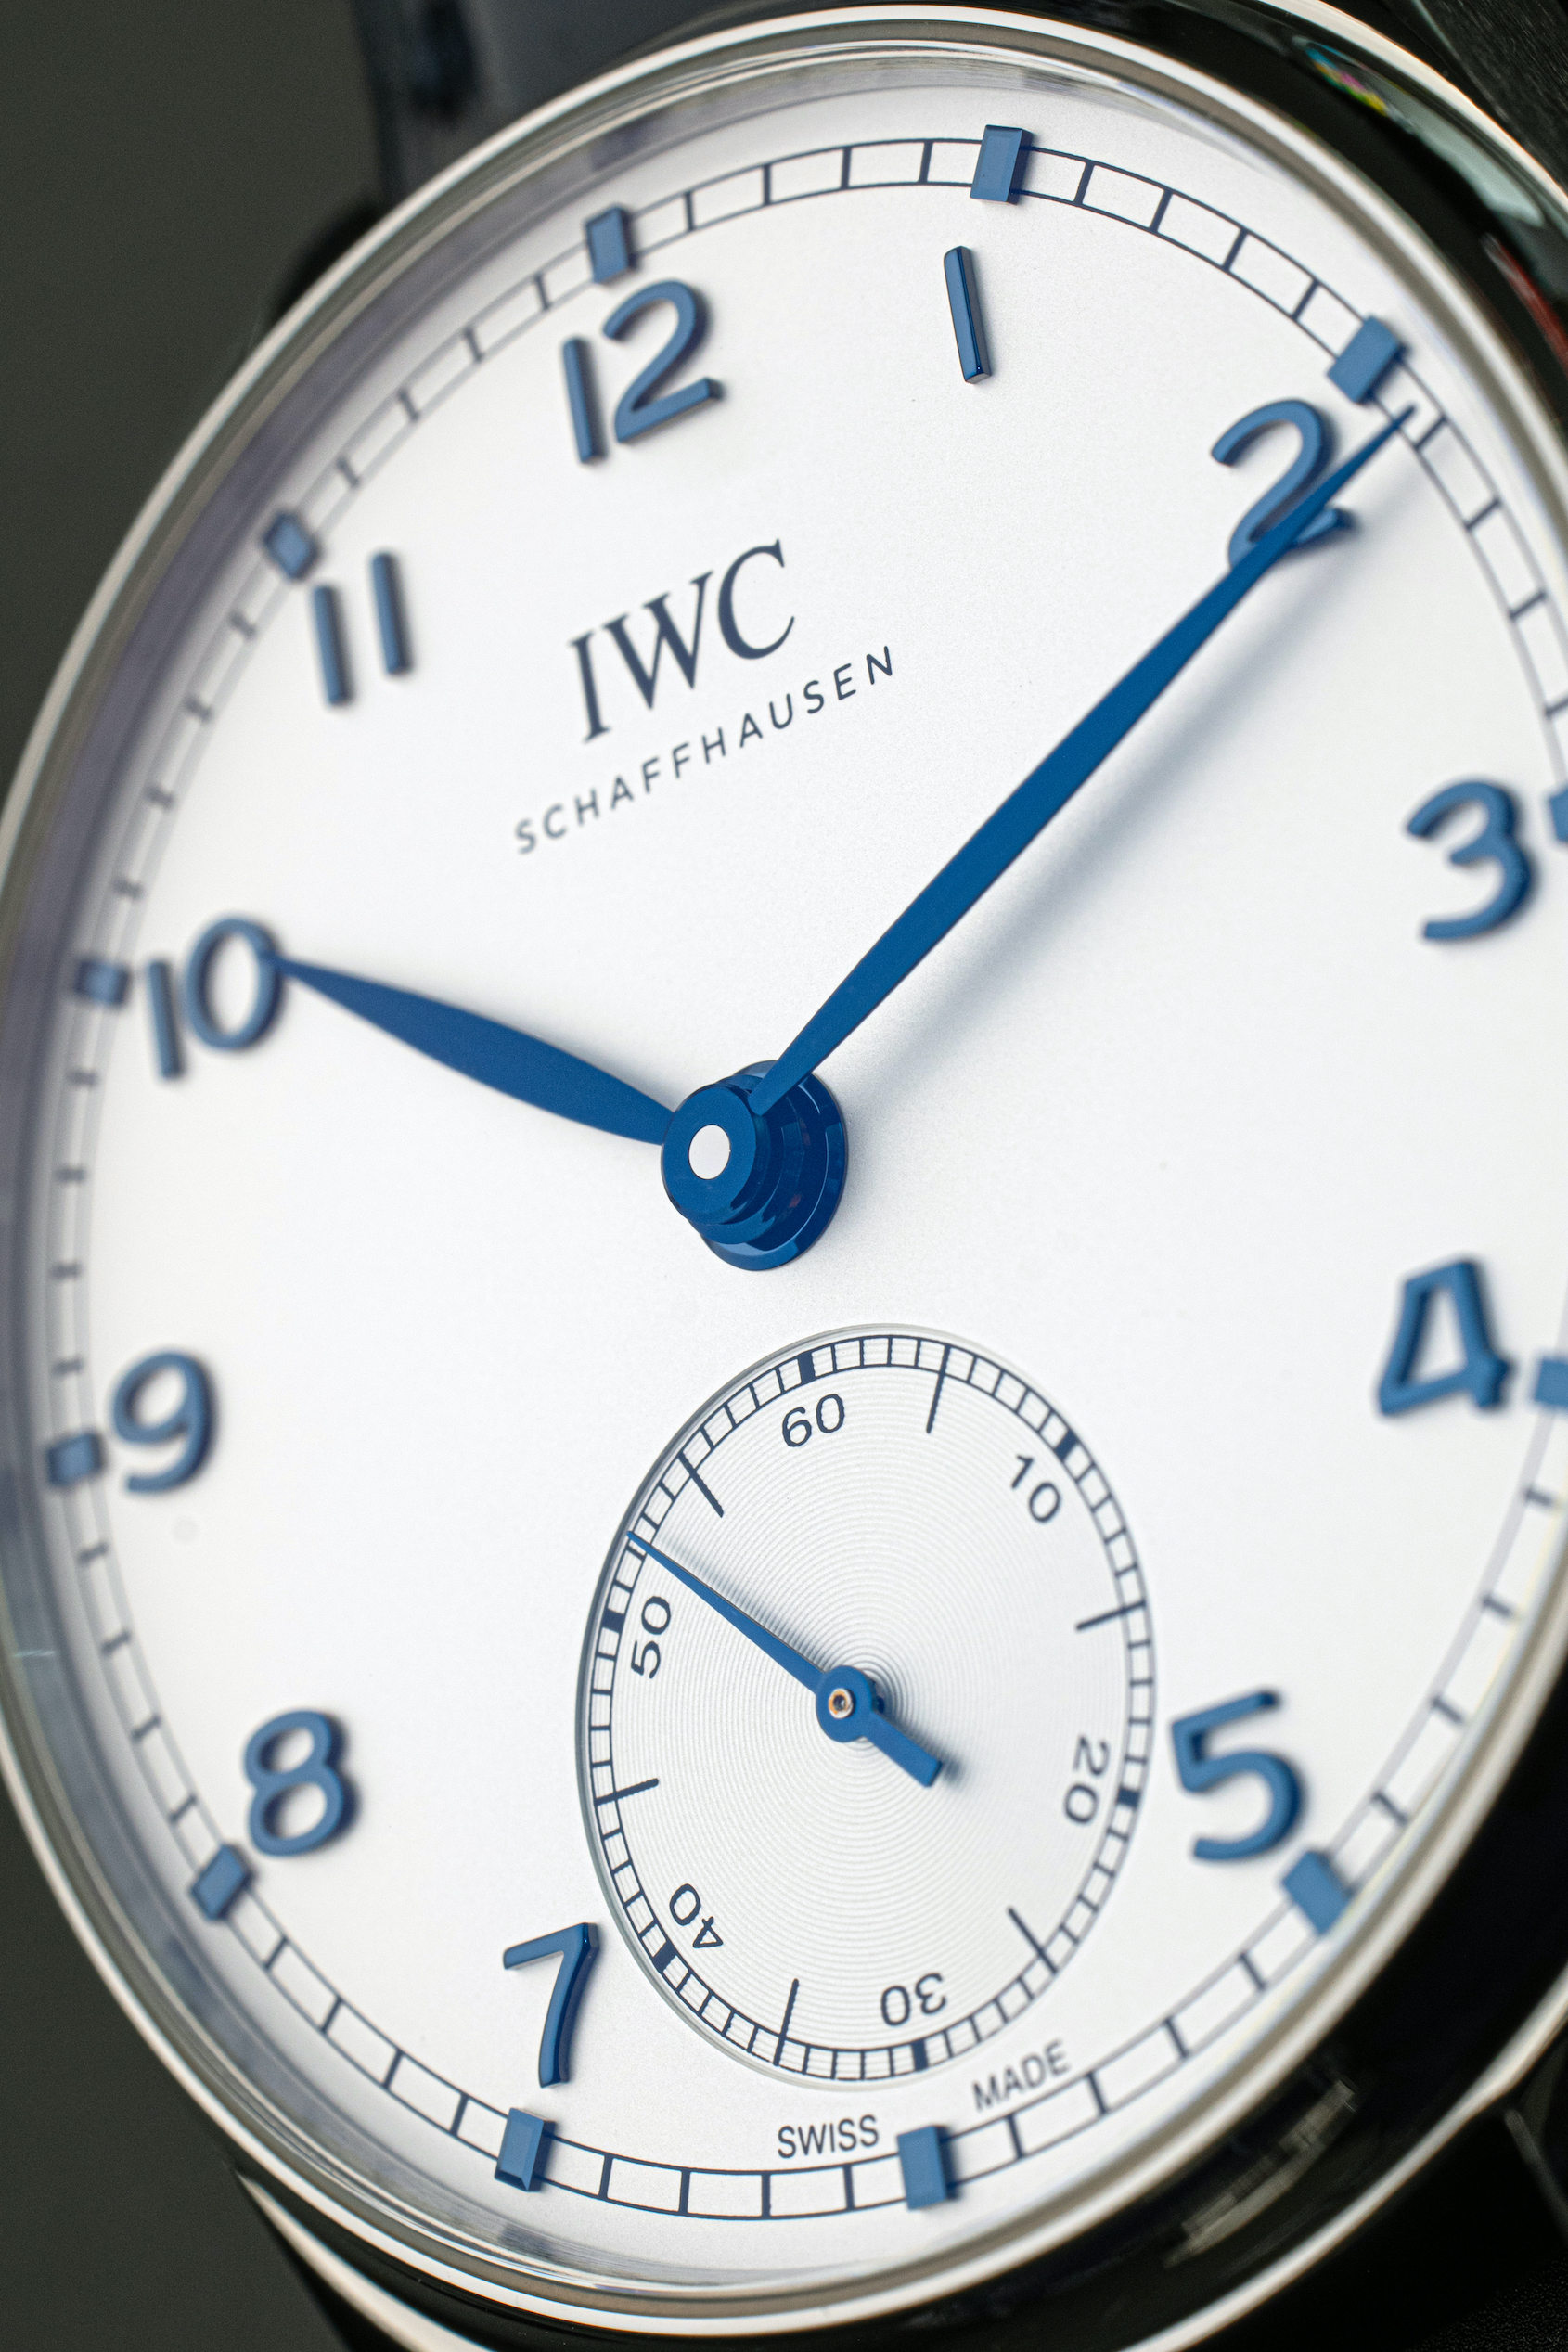 HANDS-ON: The elegance and nuance of the IWC Portugieser 2020 Collection in the metal